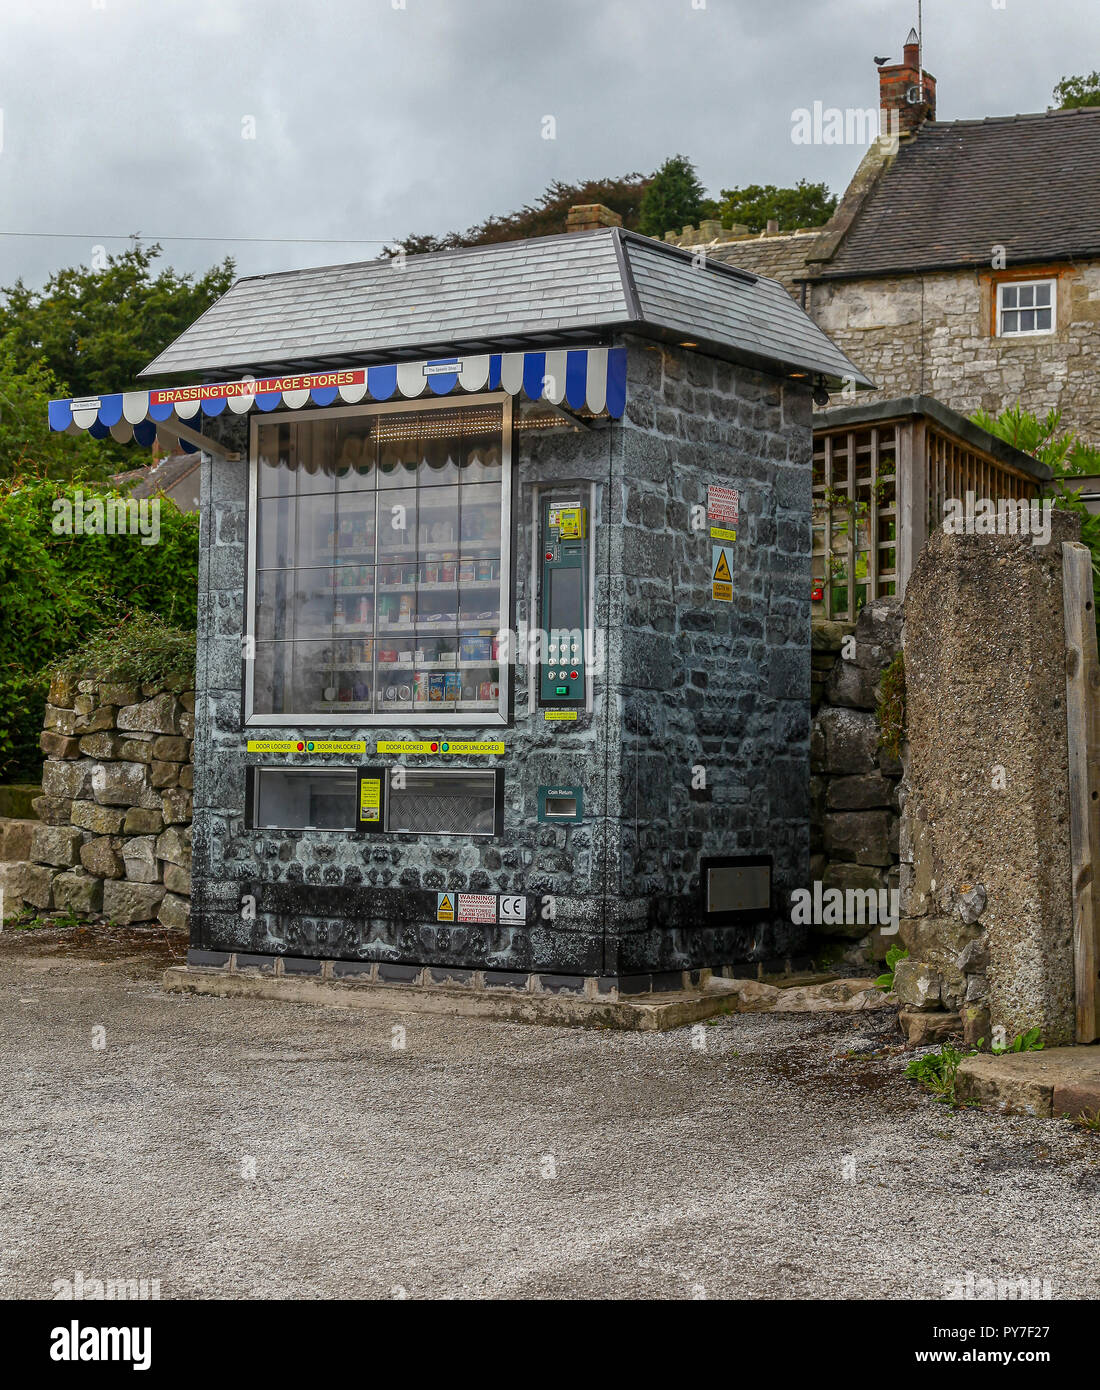 An automated village shop, 'speedy shop', in the rural village of Brassington, Derbyshire, England, UK - Stock Image